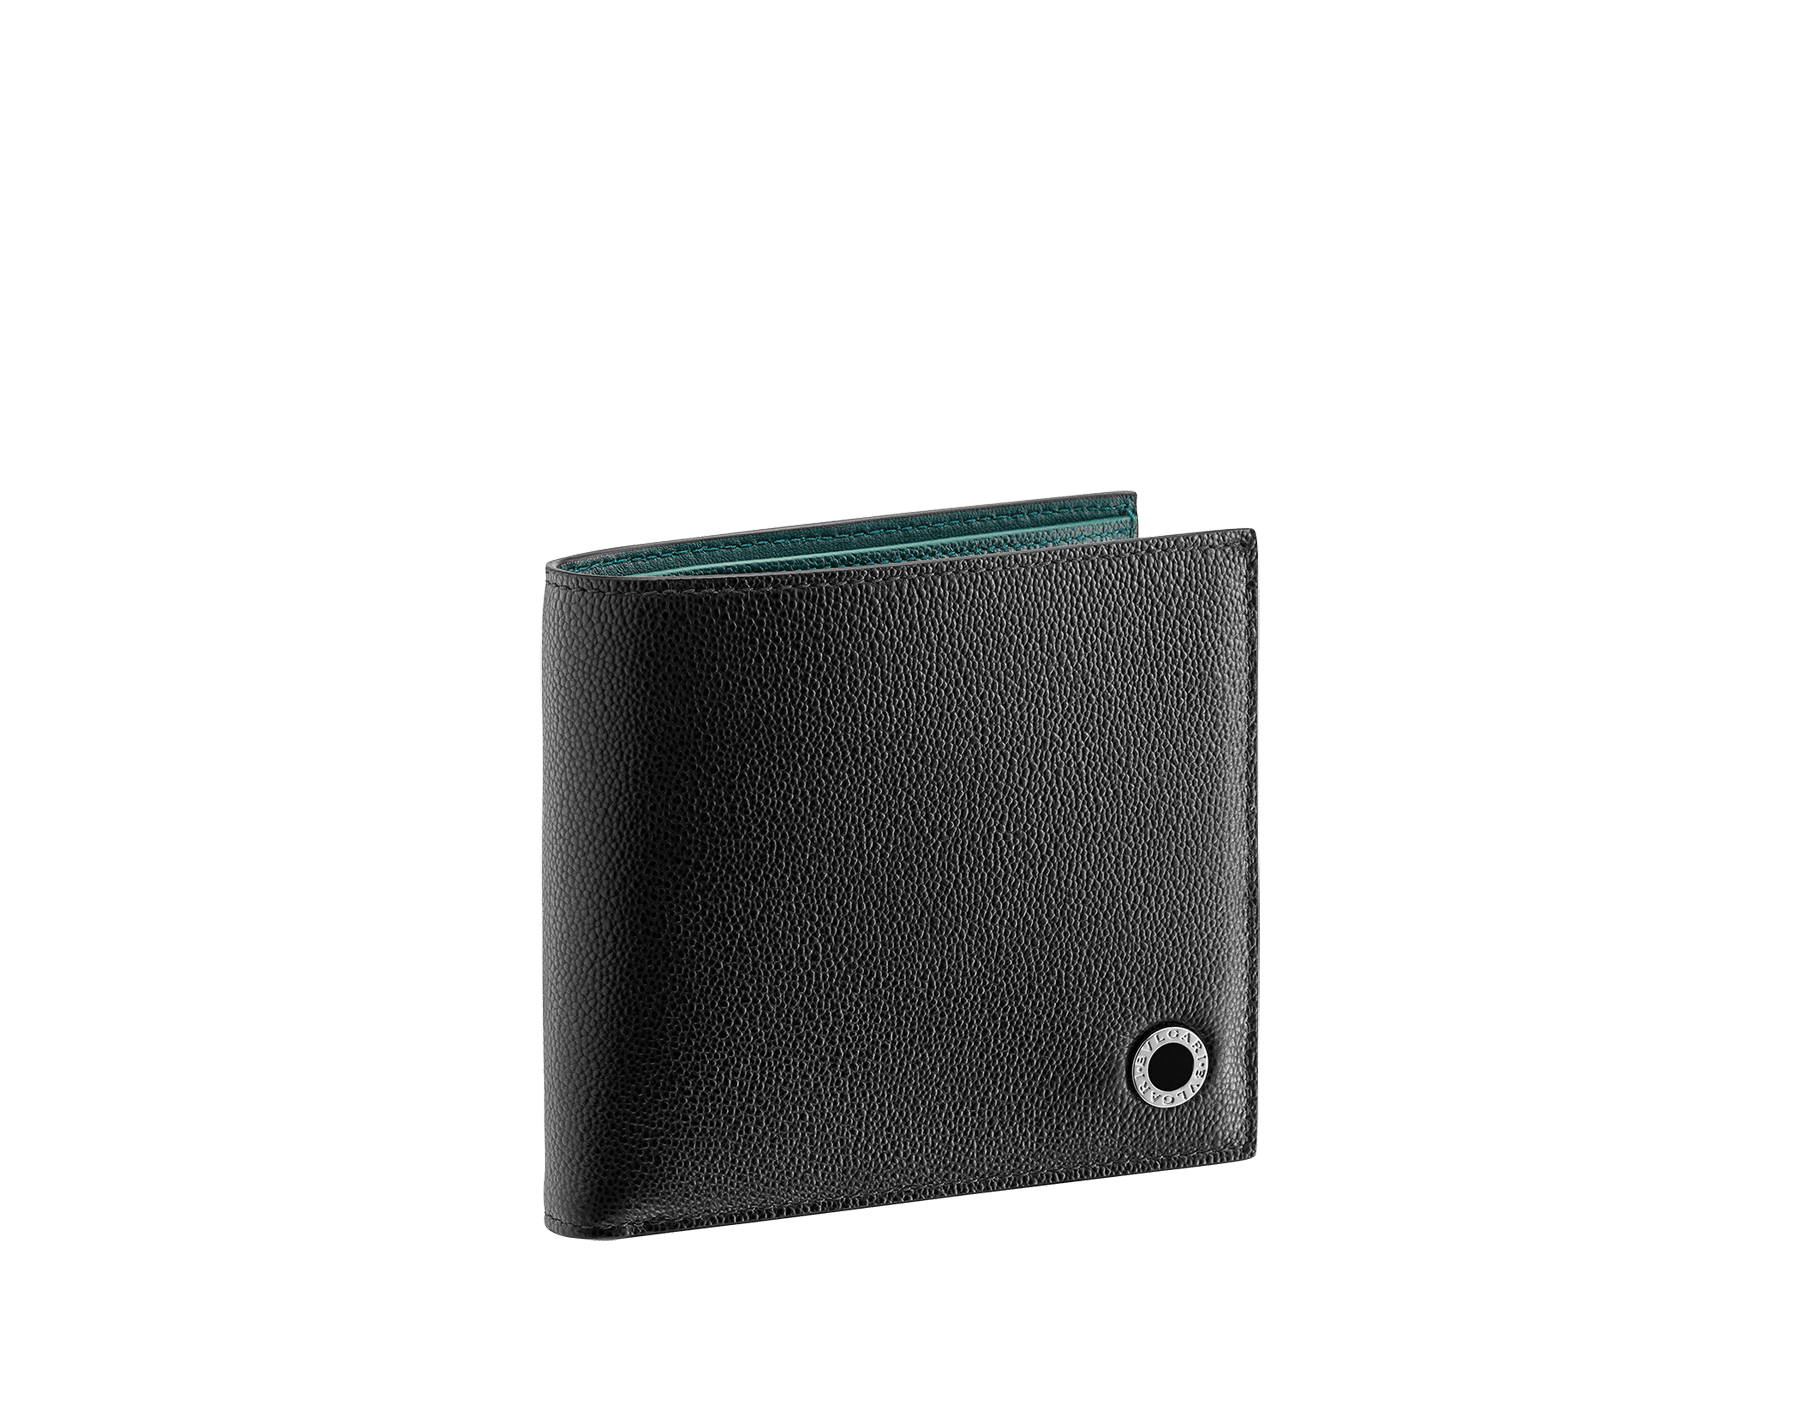 """""""BVLGARI BVLGARI"""" men's compact wallet in black and Forest Emerald green """"Urban"""" grain calf leather. Iconic logo embellishment in dark ruthenium-plated brass with black enameling. BBM-WLTITALASYM image 1"""